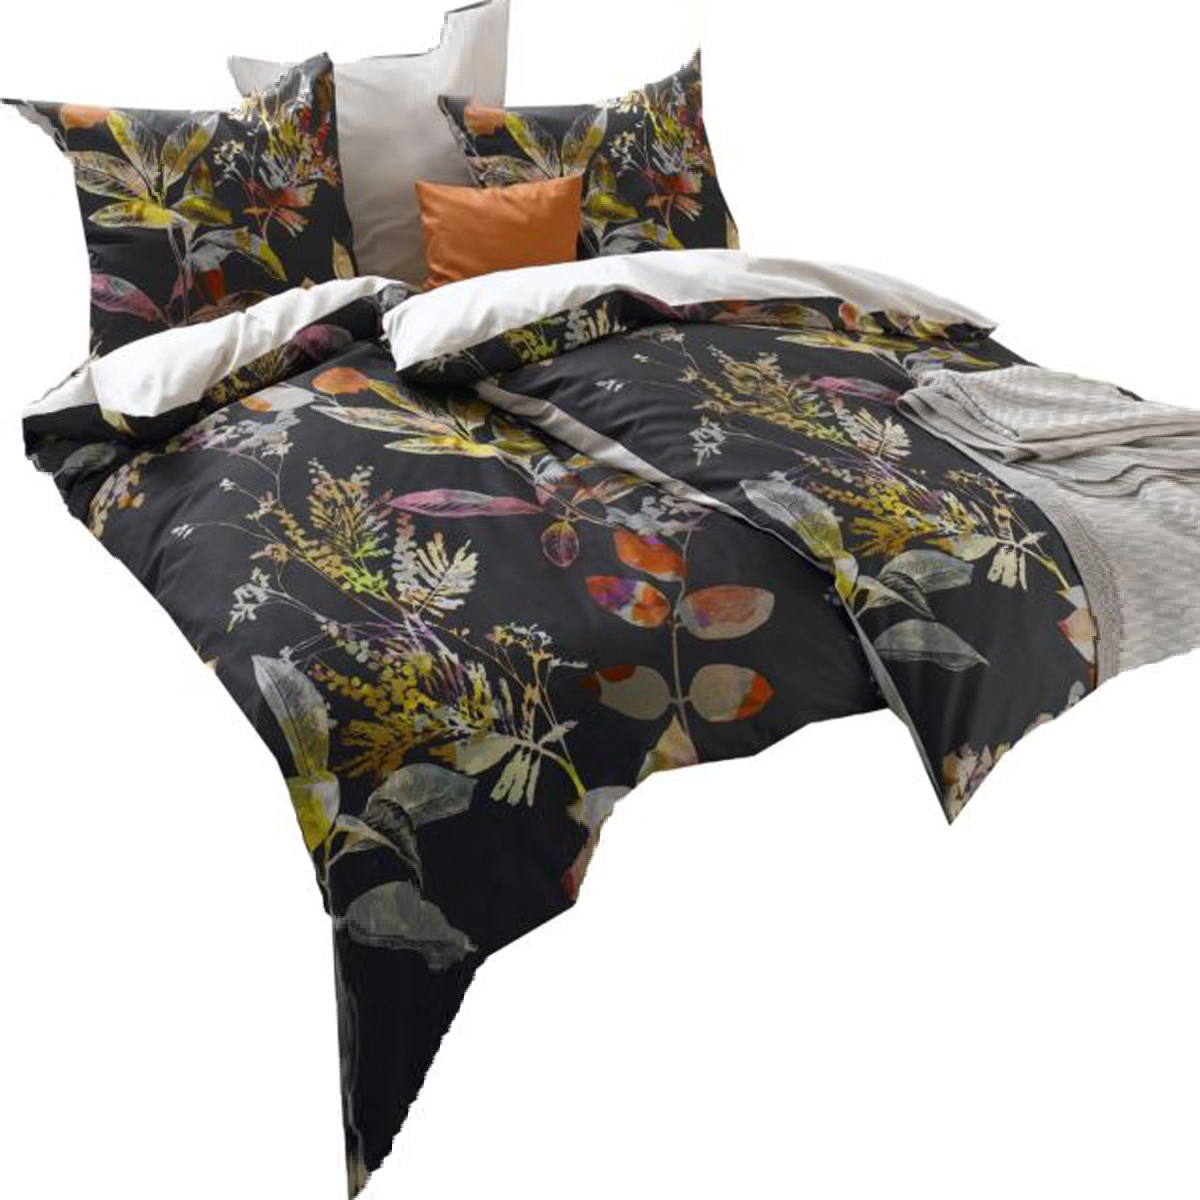 mako satin bettw sche fleuresse bed art s herbstzauber schwarz bettw sche mako satin bettw sche. Black Bedroom Furniture Sets. Home Design Ideas